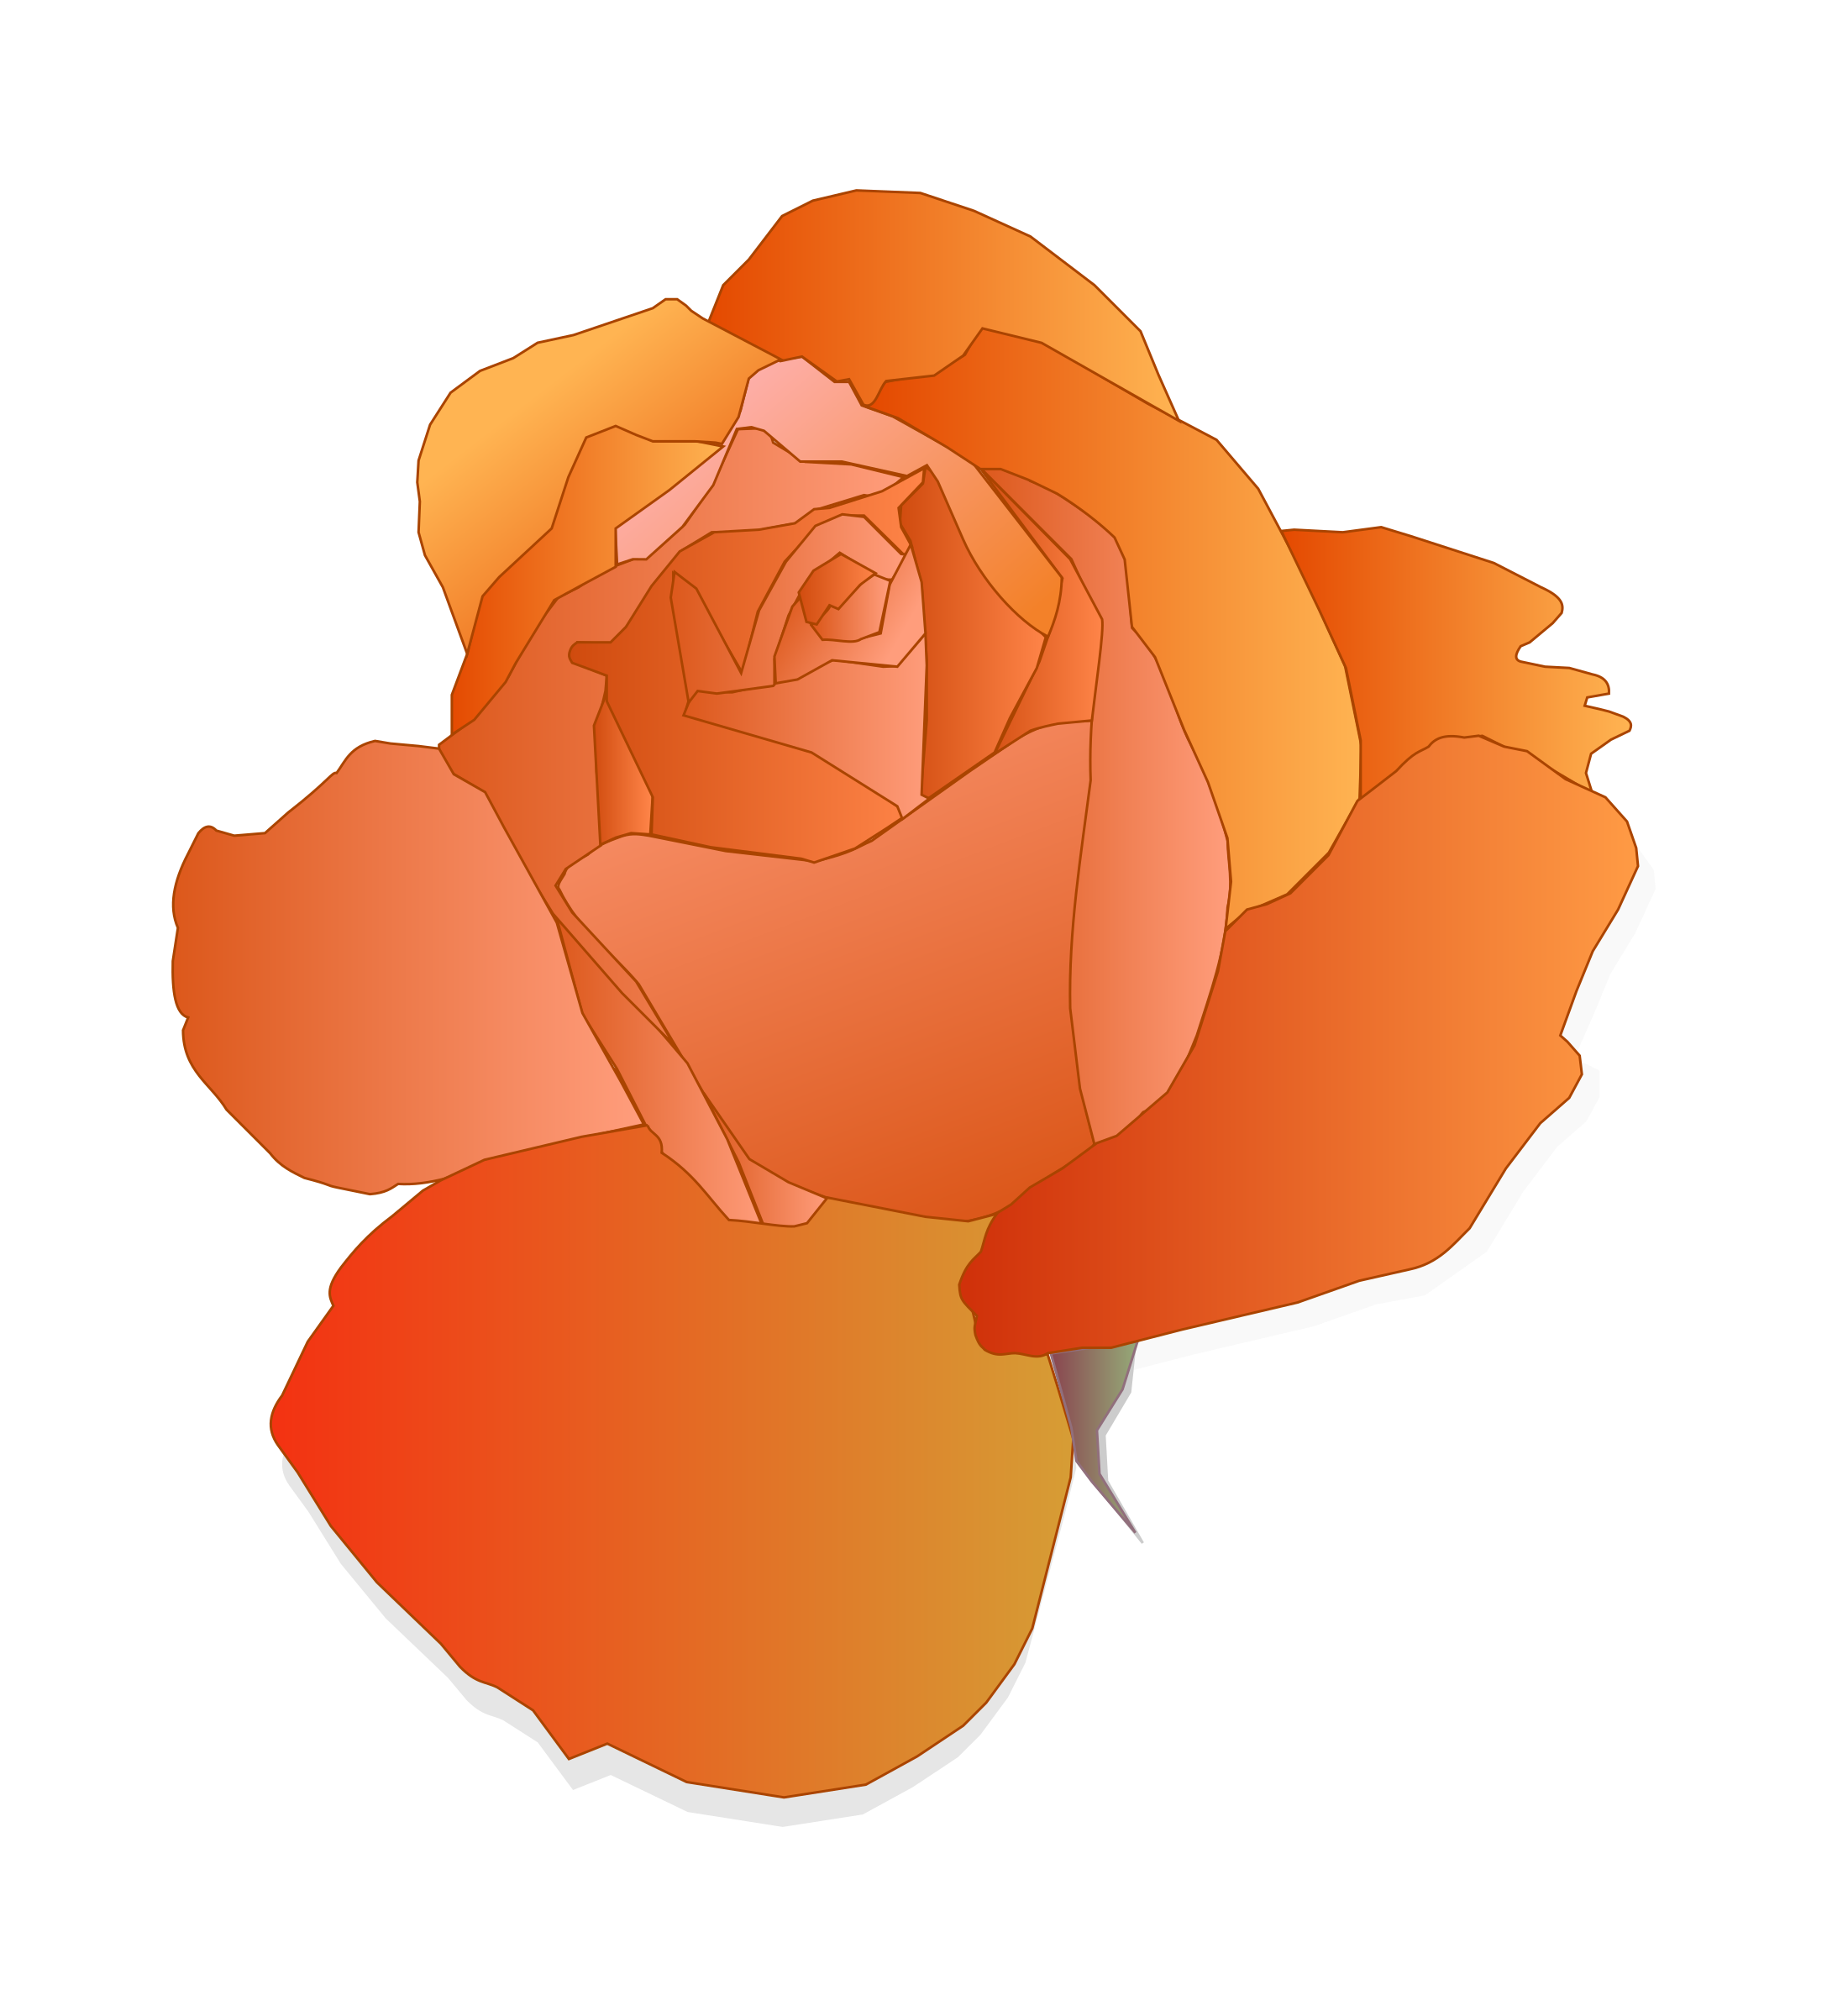 Orange Rose by mirys